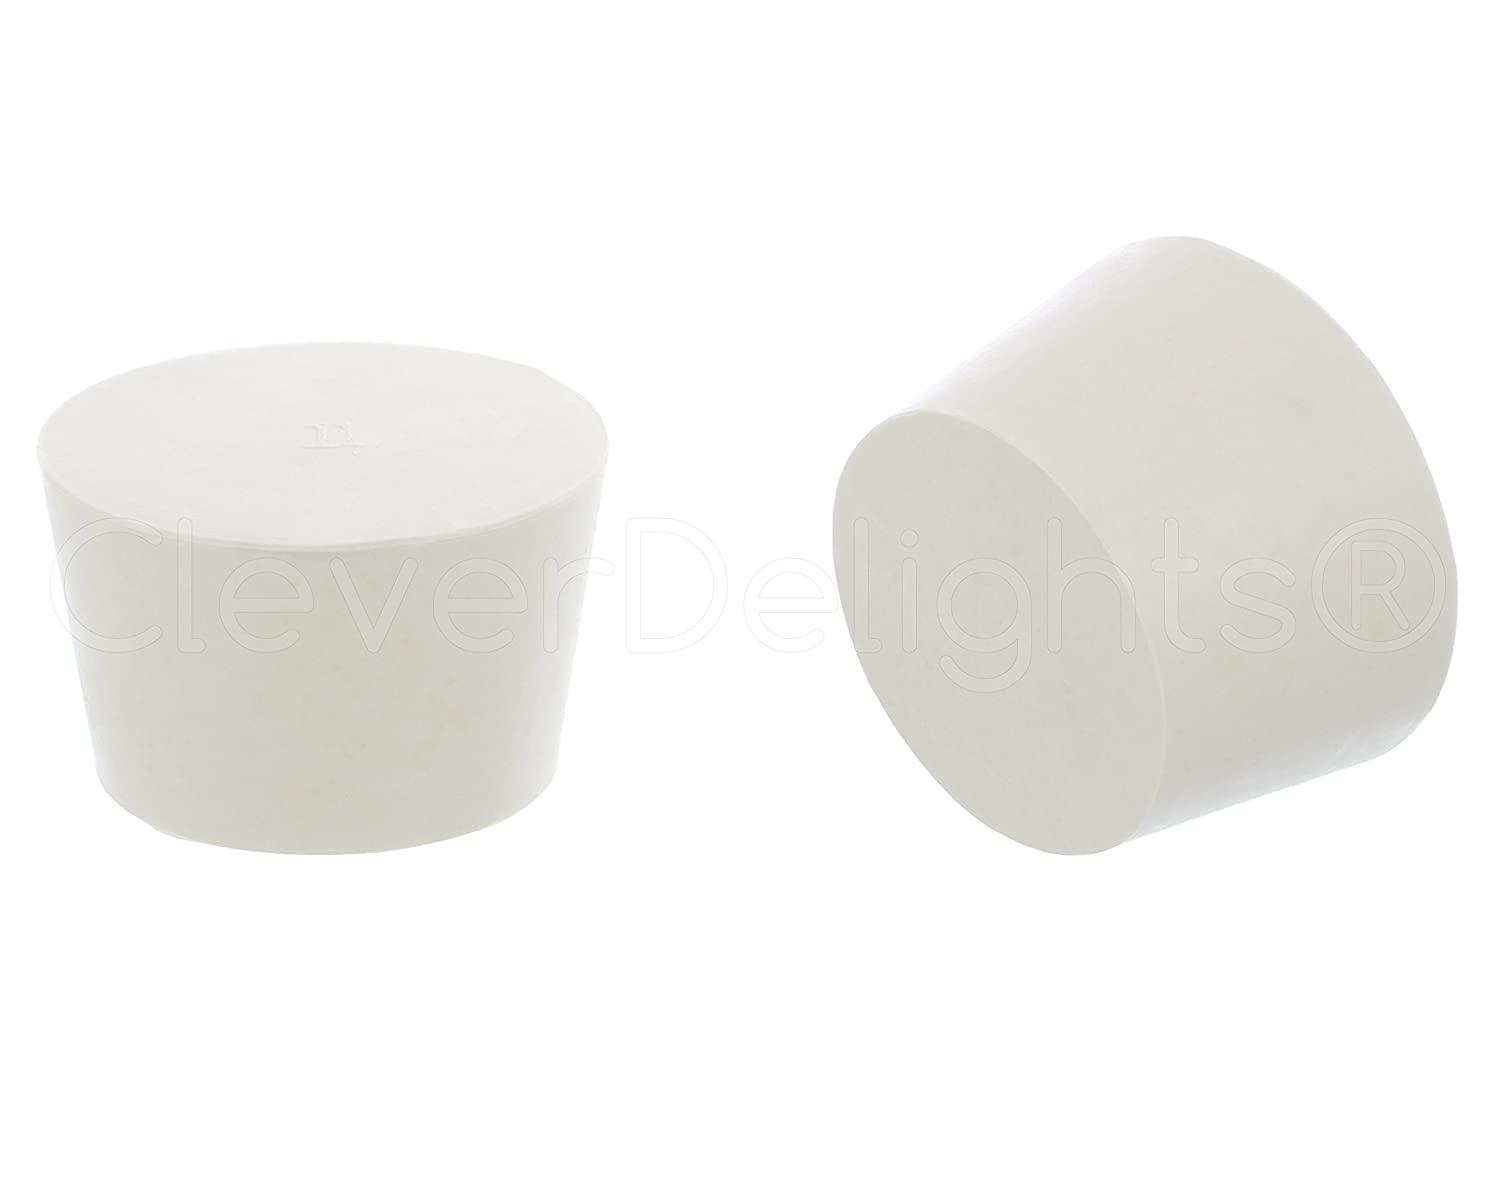 6 Pack - CleverDelights Solid Rubber Stoppers | Size 11 | White - 56mm x 46mm - 34mm Long - Lab Plug #11